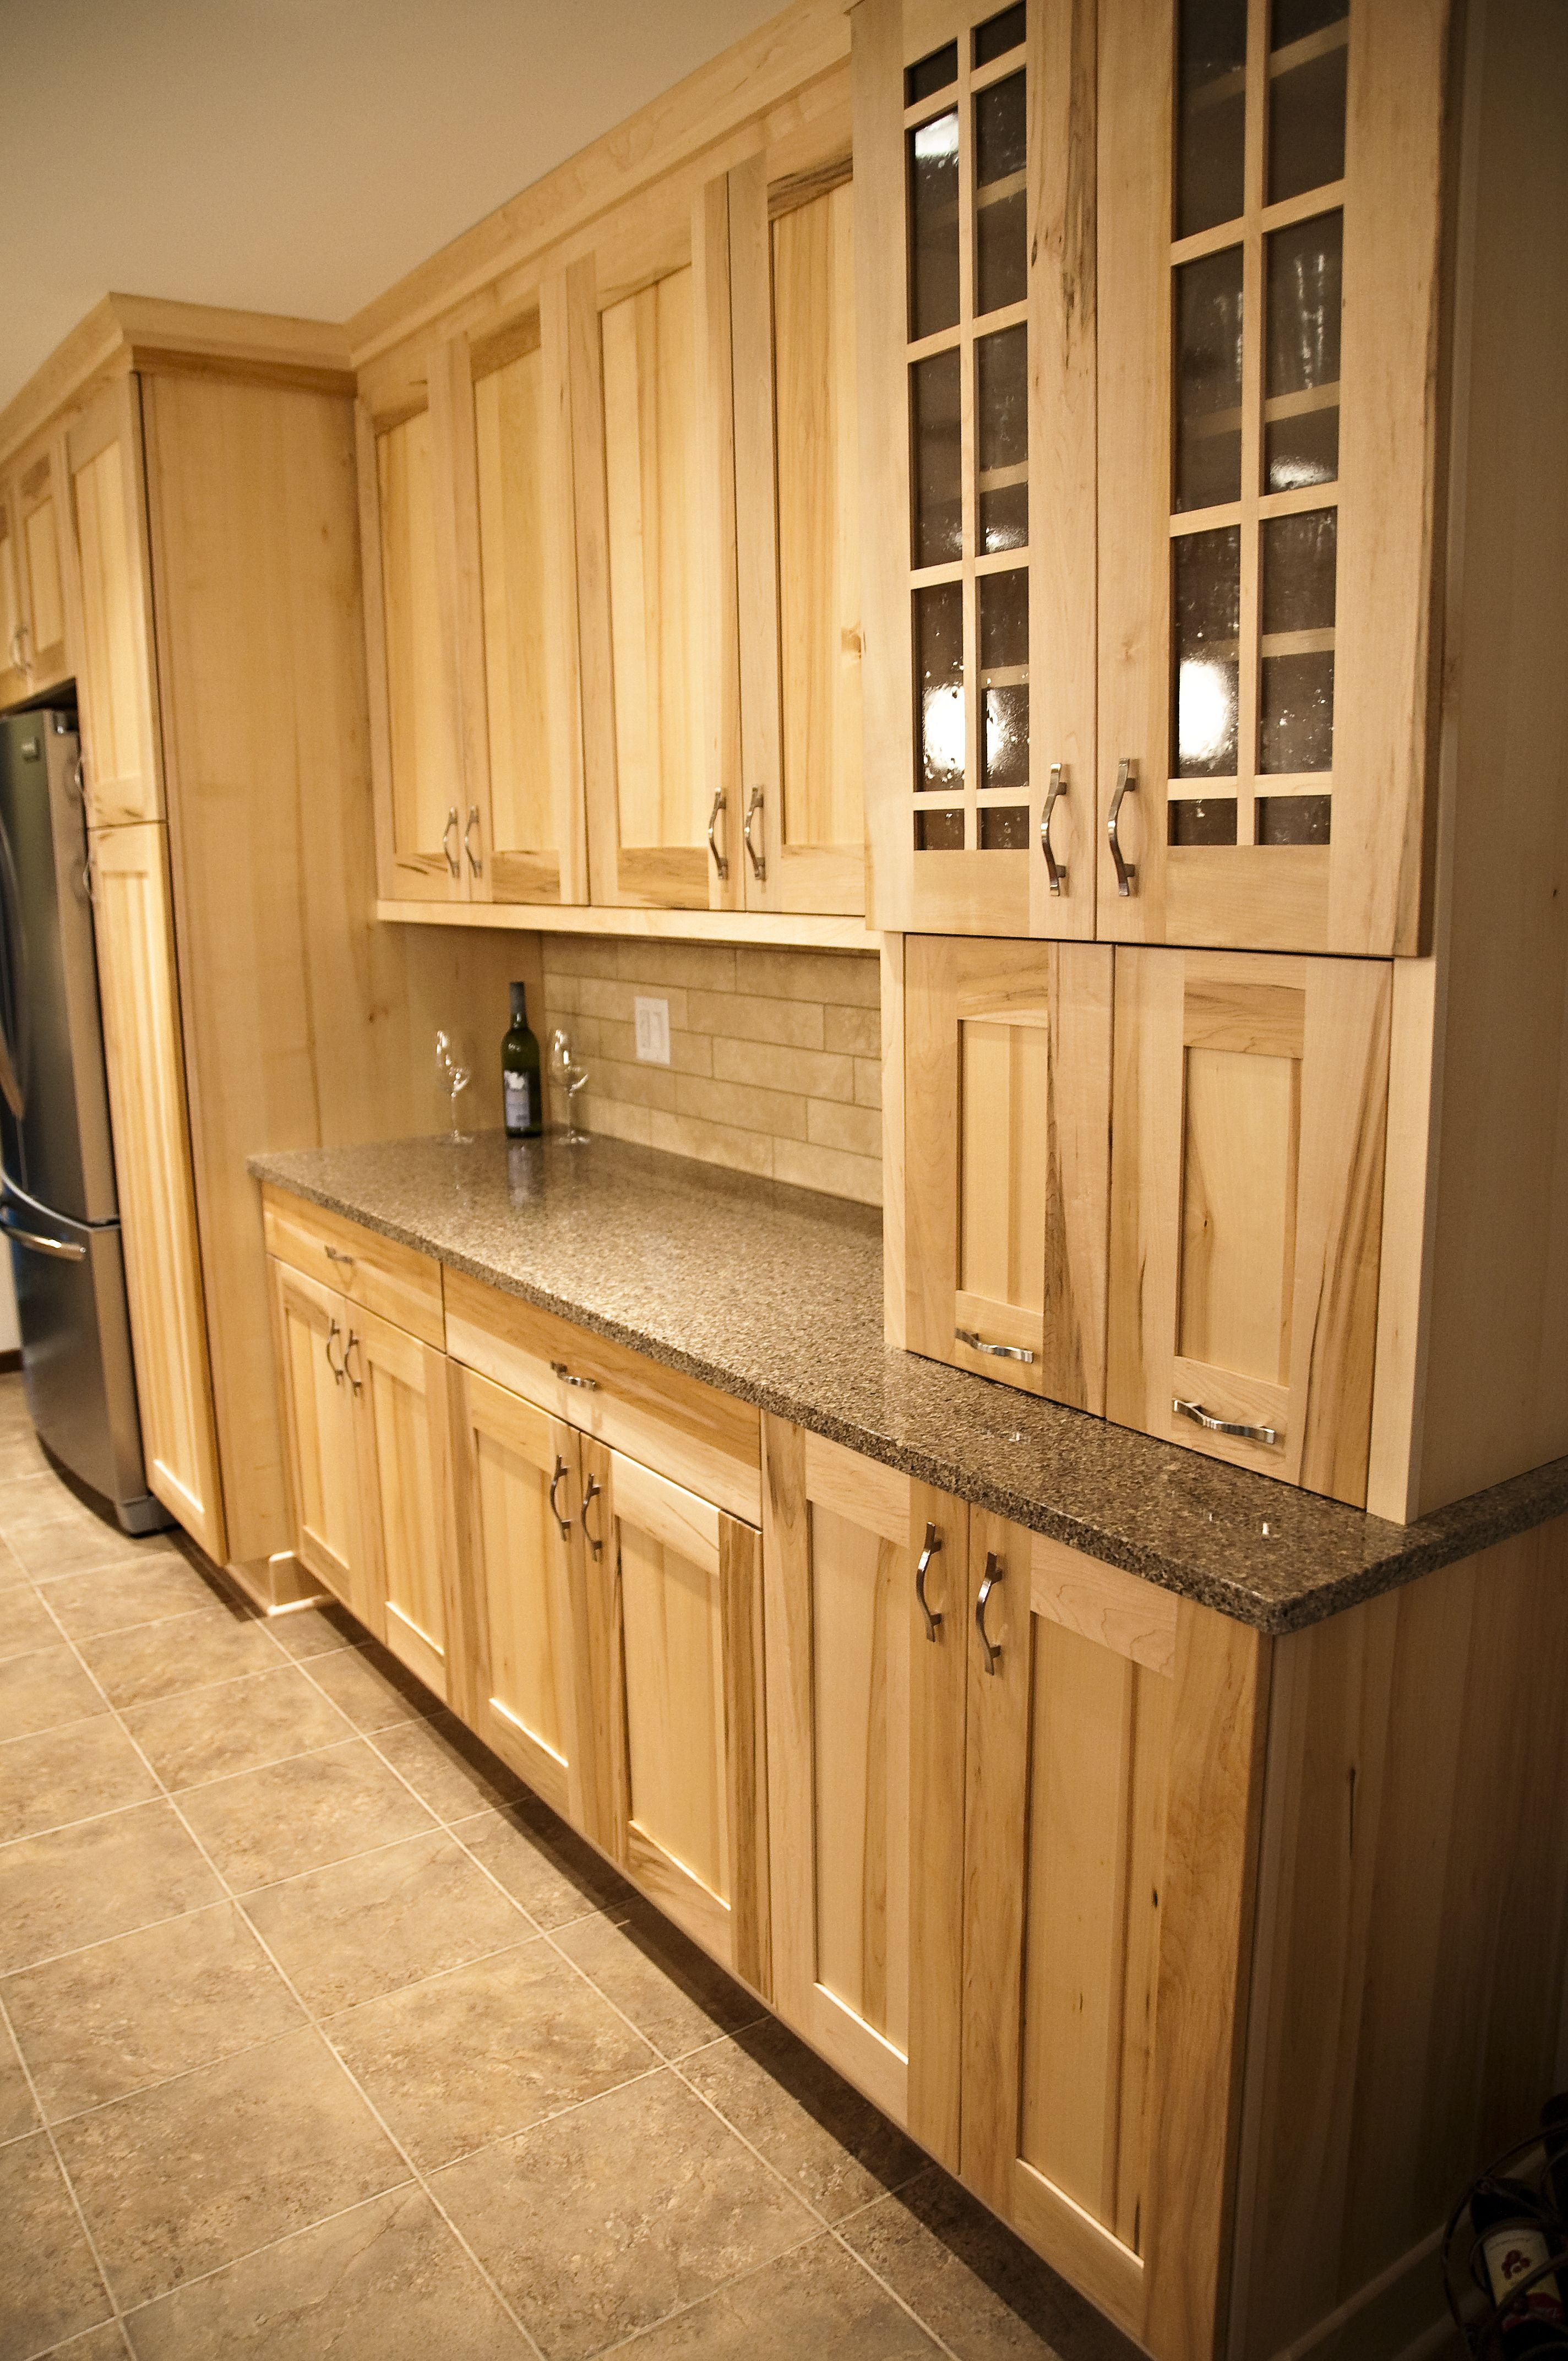 Kitchens With Light Maple Cabinets 2021 Hickory Kitchen Cabinets Maple Kitchen Cabinets Hickory Kitchen